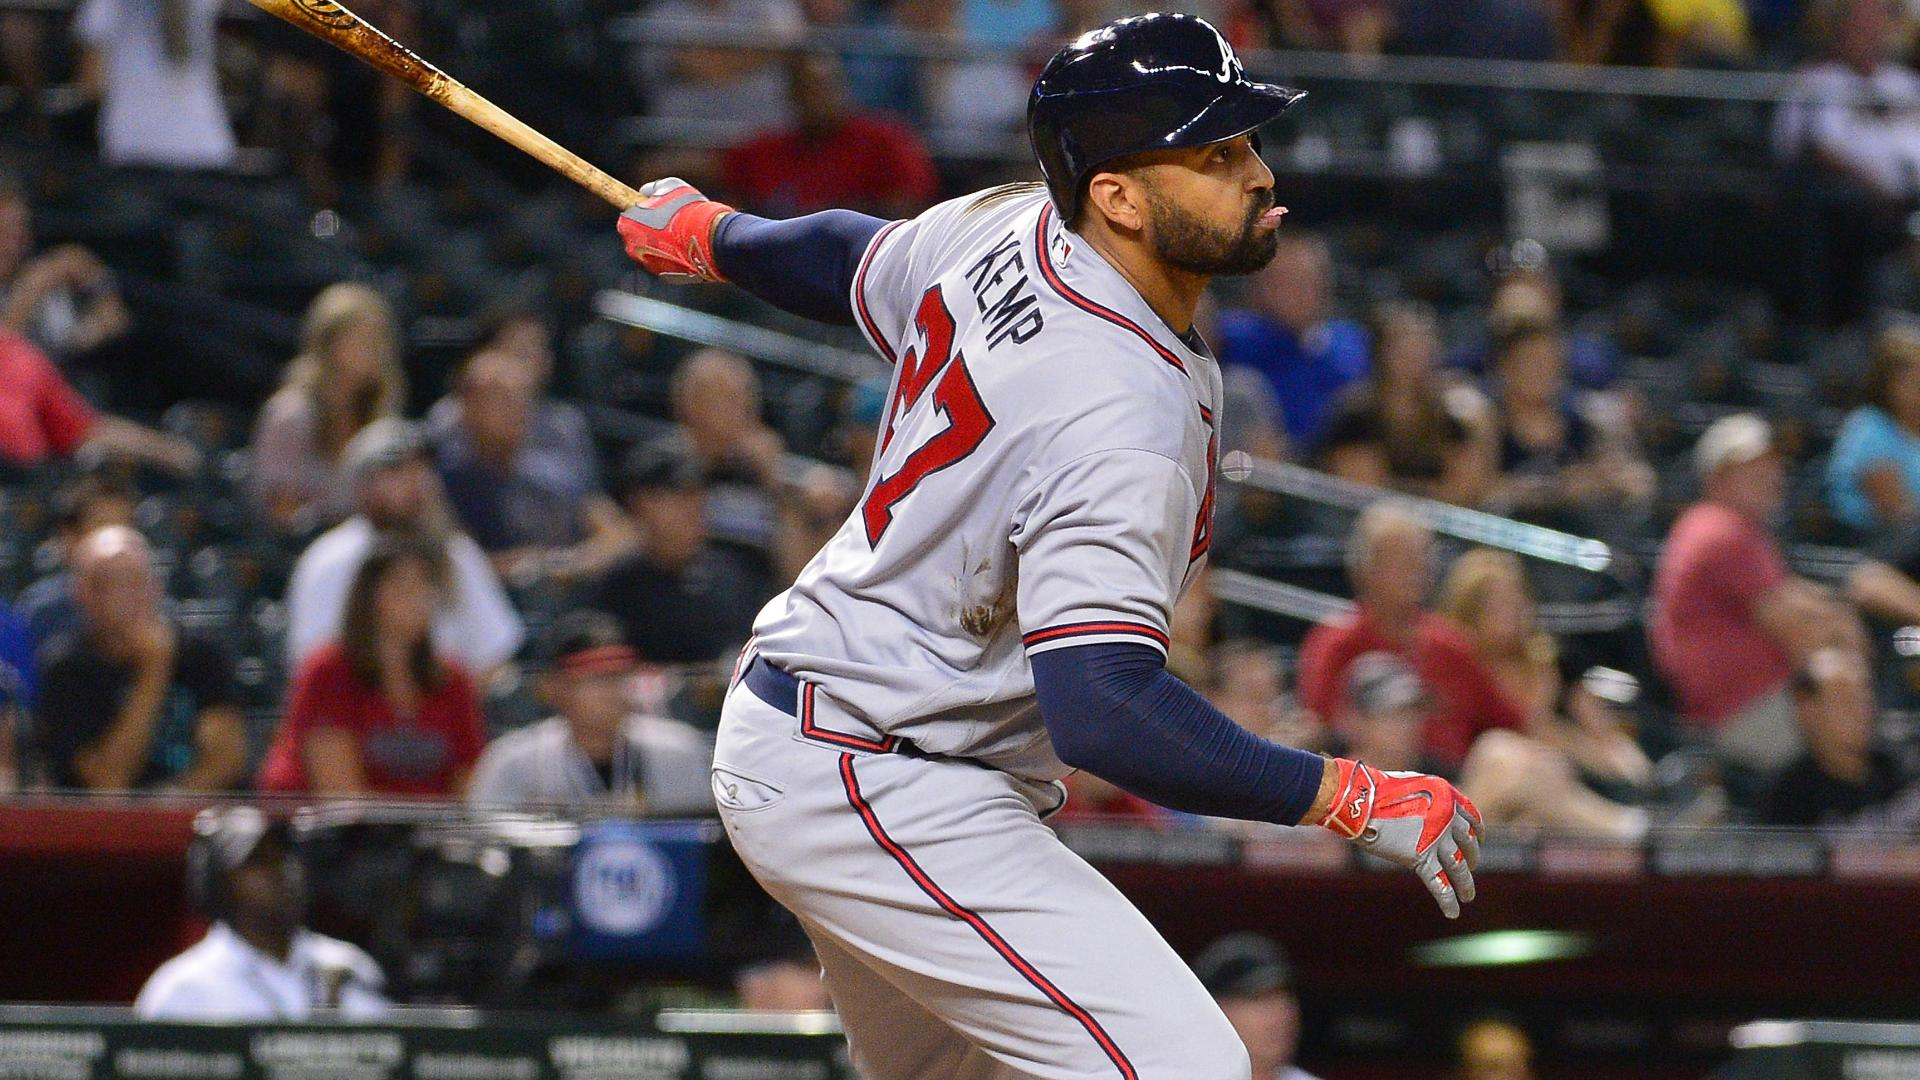 Kemp puts Braves ahead with bases-clearing double